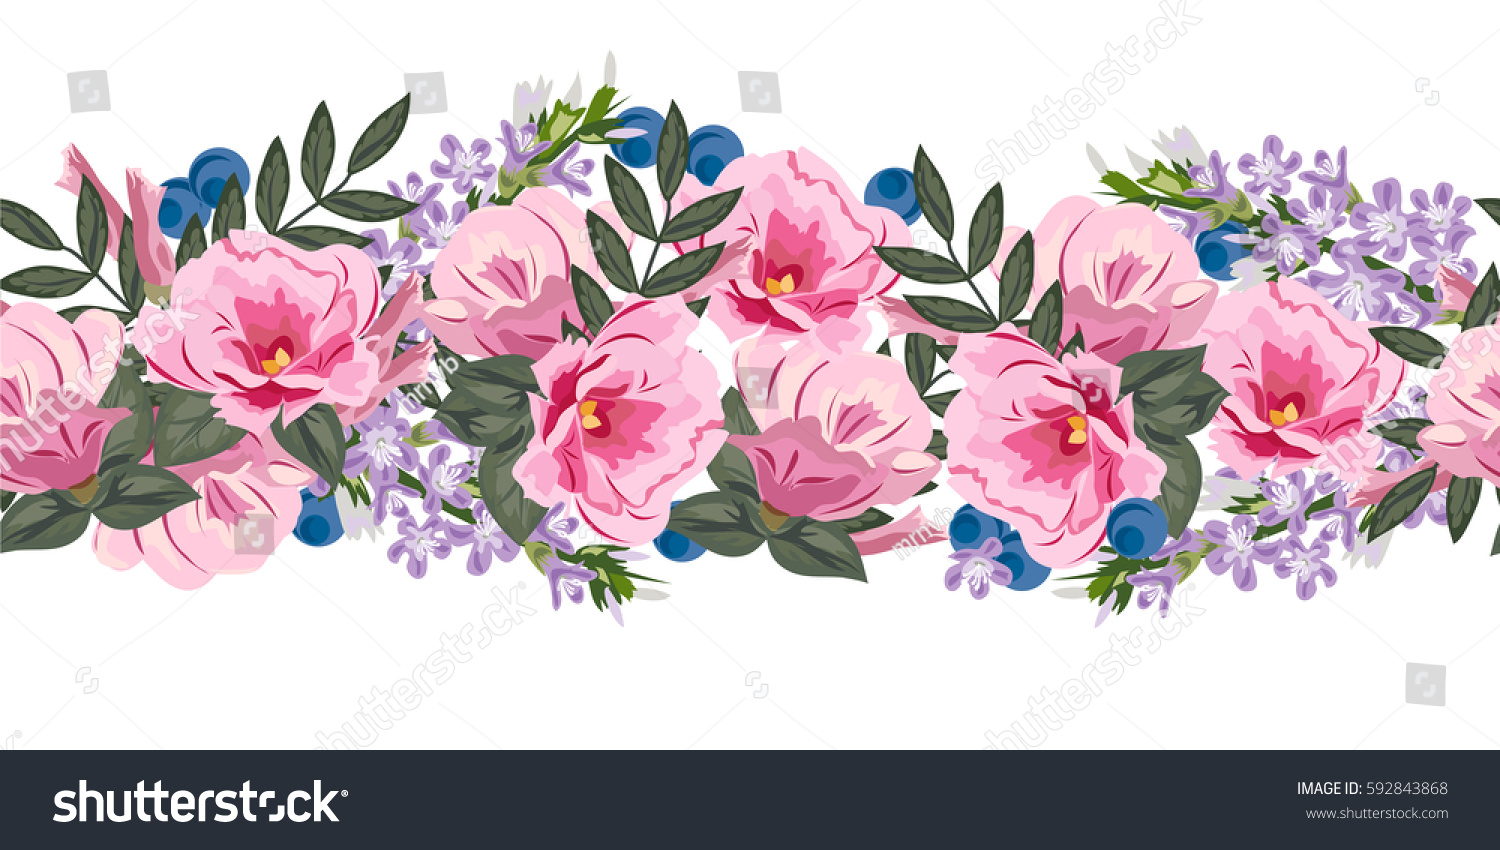 Seamless Floral Border Cute Pink Flowers Stock Vector Royalty Free